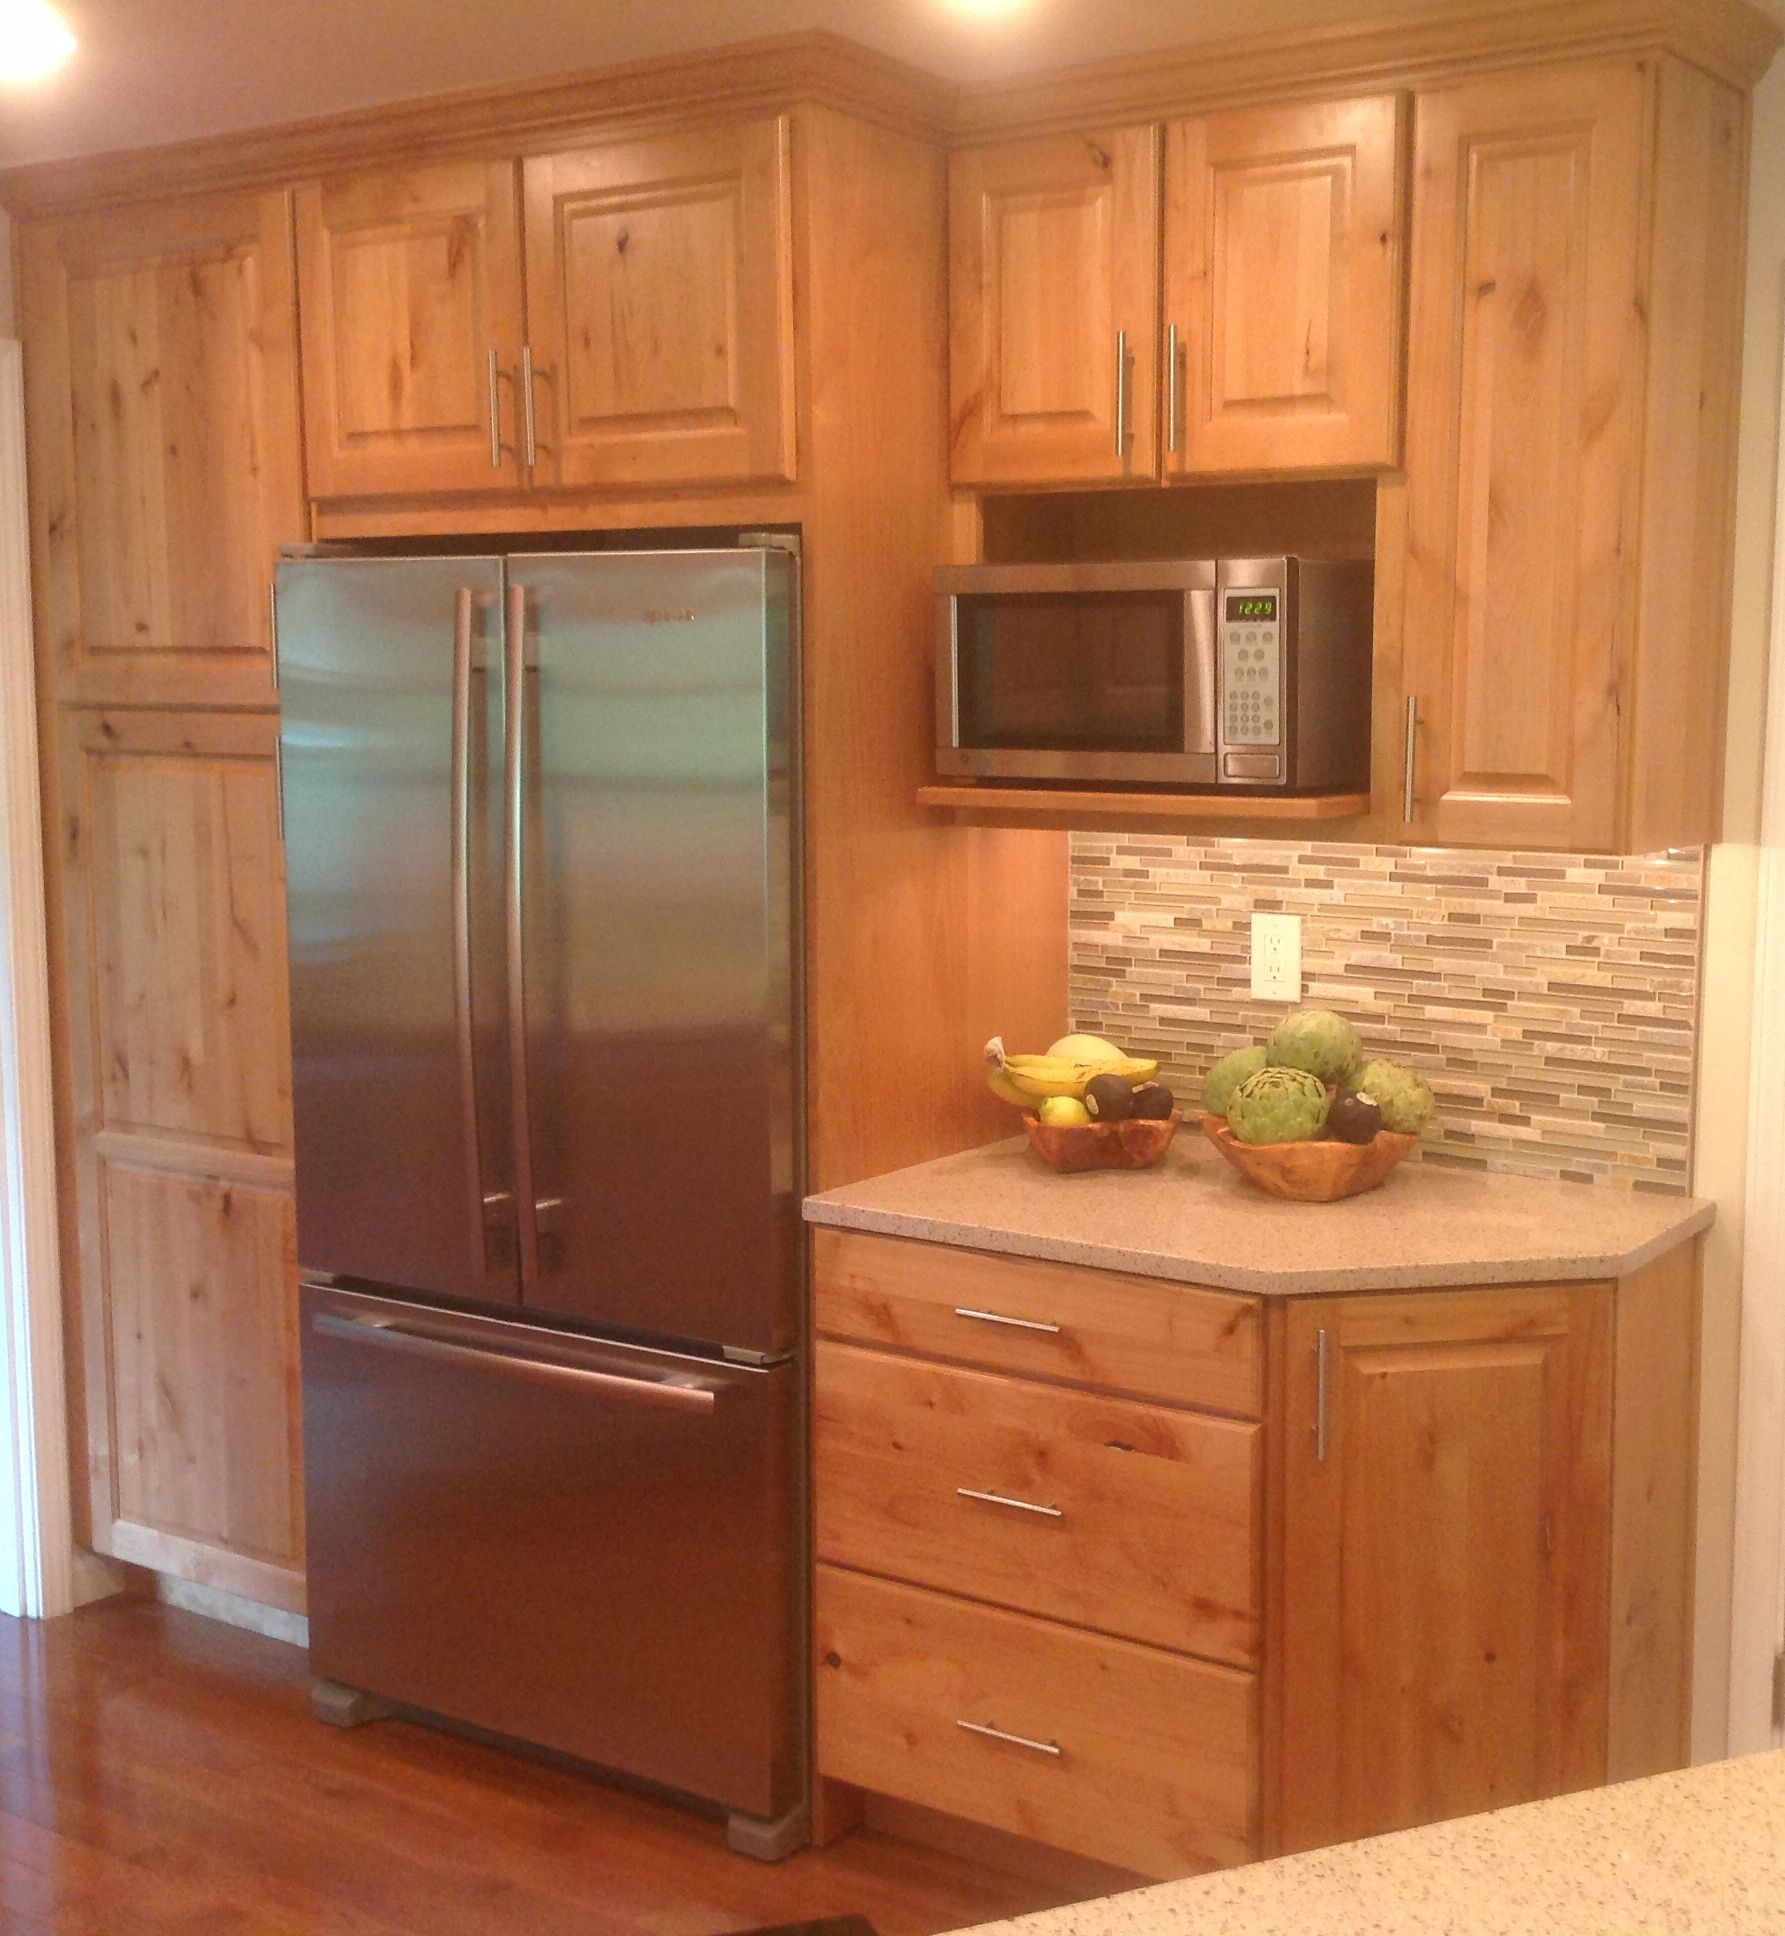 Kitchen Cabinets Colorado Springs: Rustic Country Kitchen Designs Knotty Alder Genuine Home